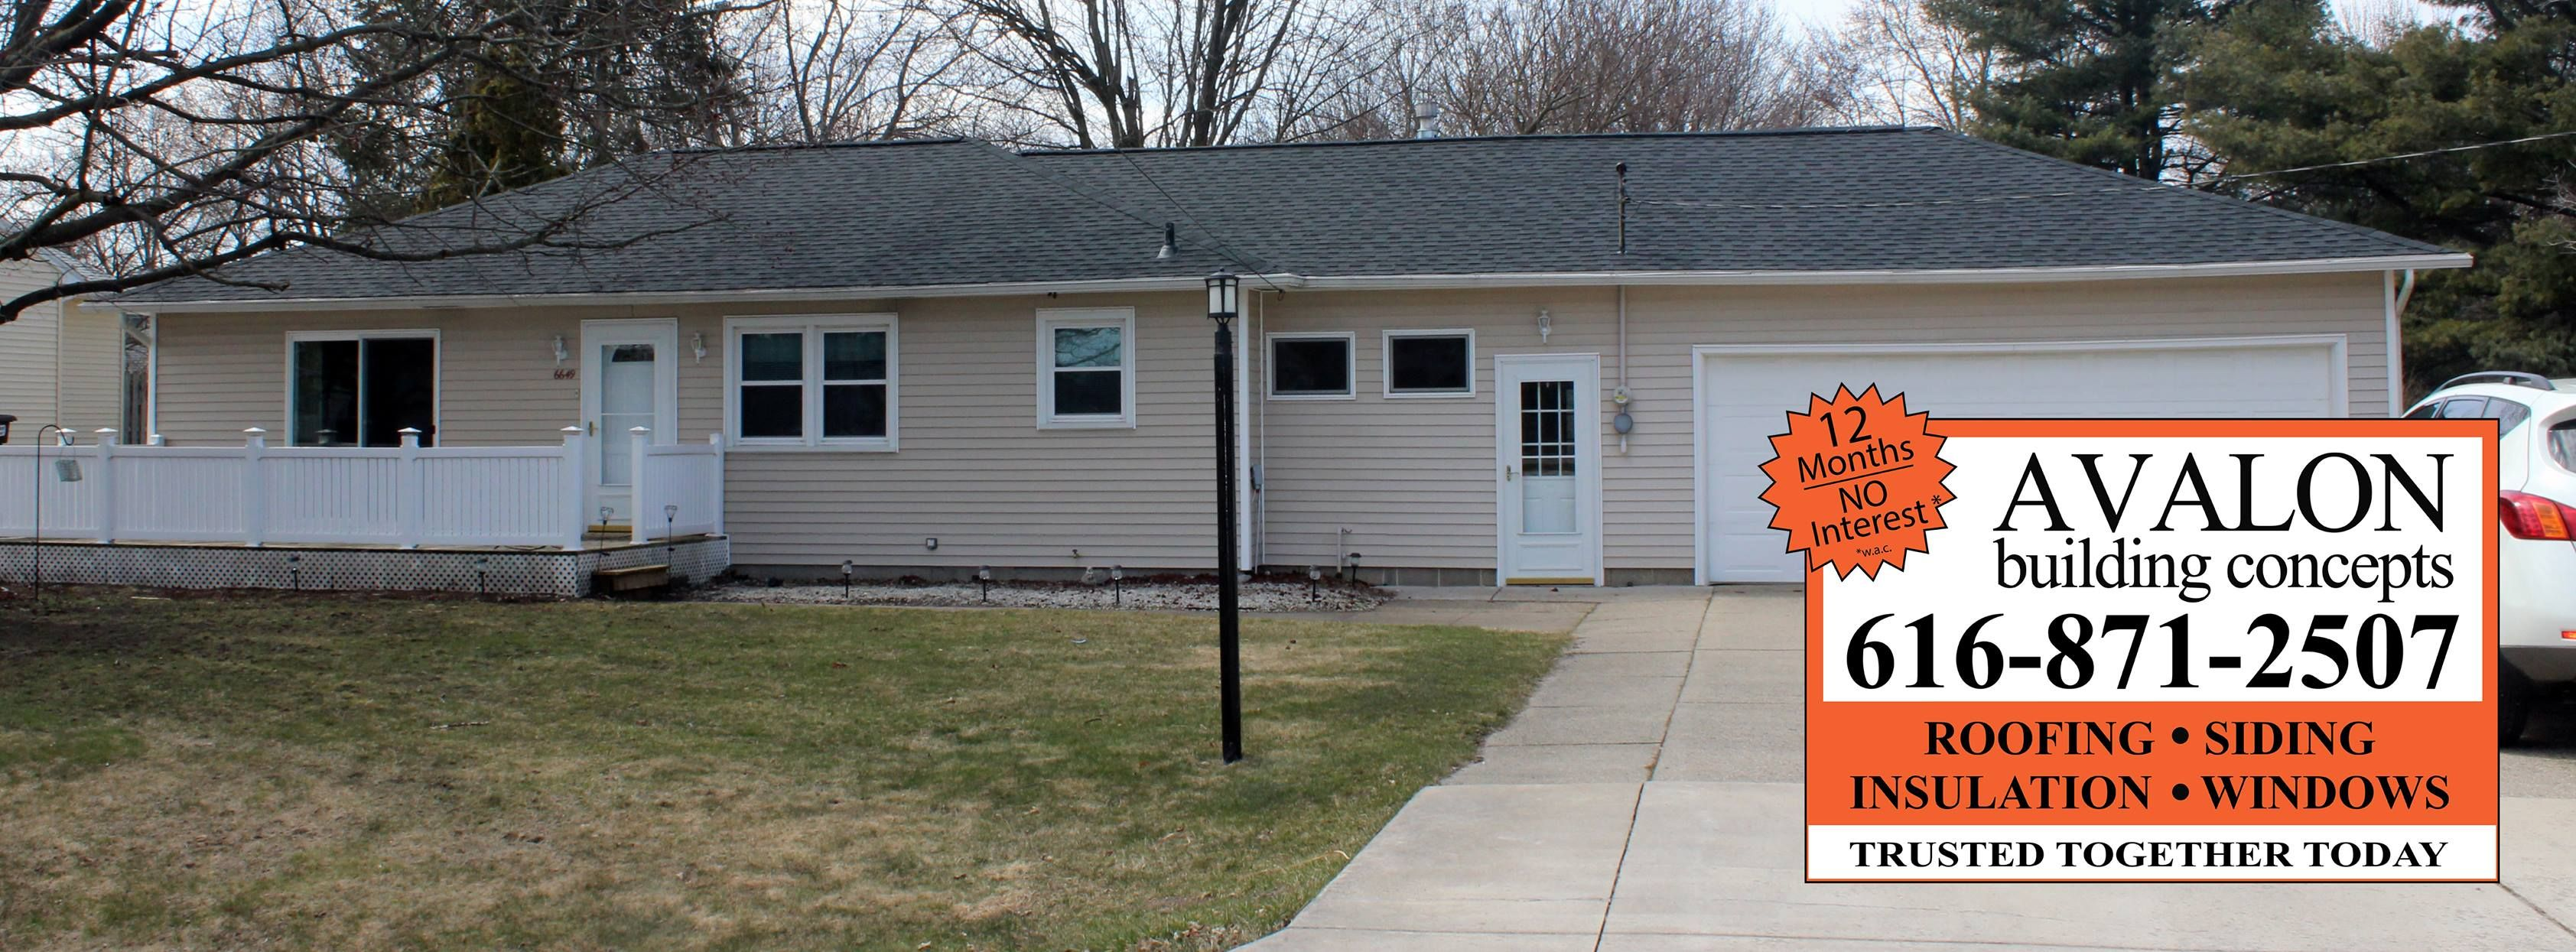 Does Your Home Need Some Loving Gaf Home Tlc Building Concept Building Insulated Siding